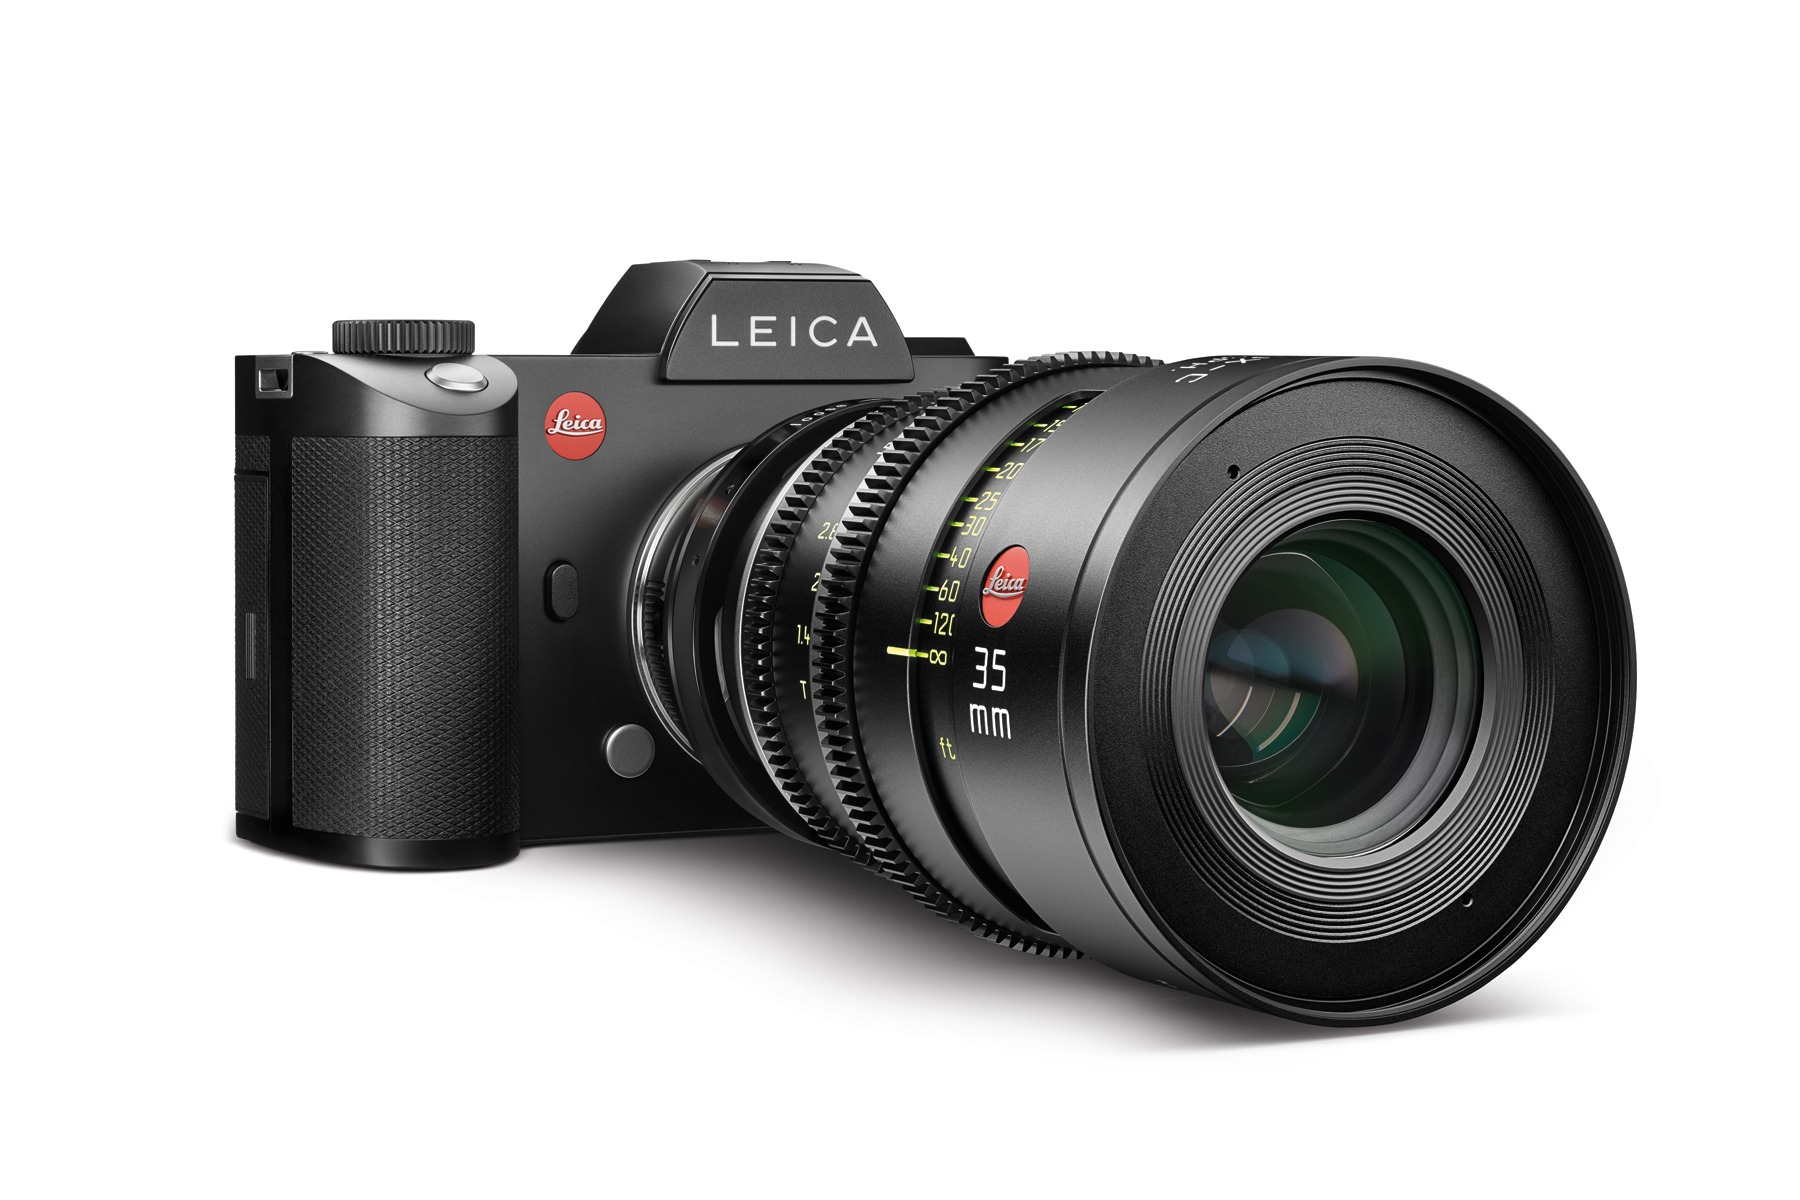 Leica SL (Typ 601) Review: A Professional Mirrorless ...